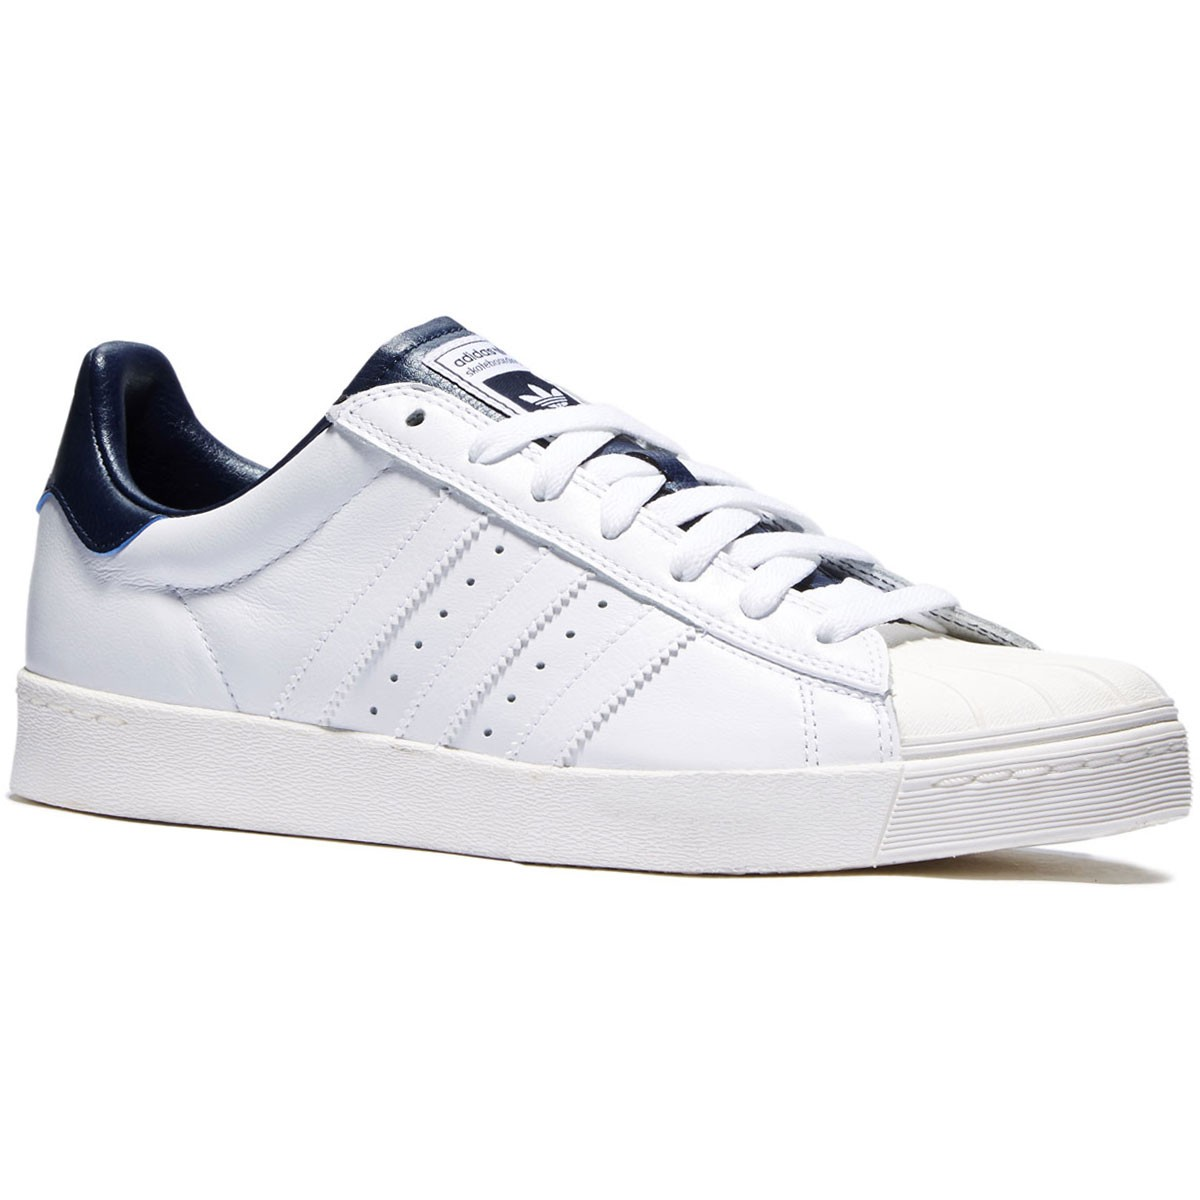 Cheap Adidas Superstar Vulc ADV Shoes Blue Cheap Adidas MLT